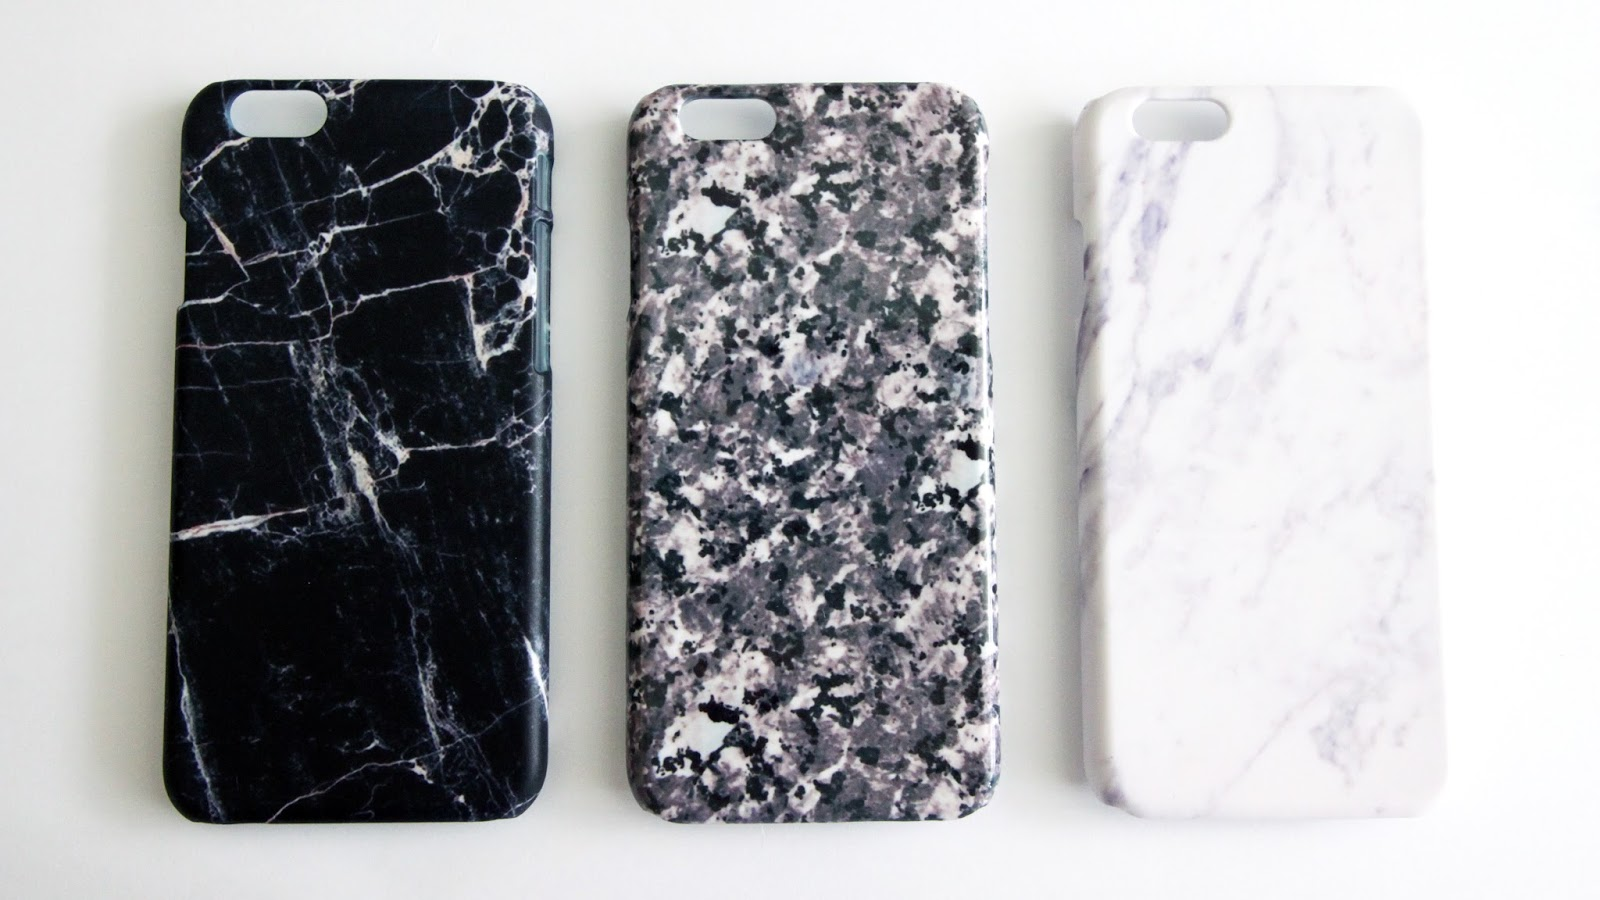 INSTOCK Iphone 6 Marble Cases 1450